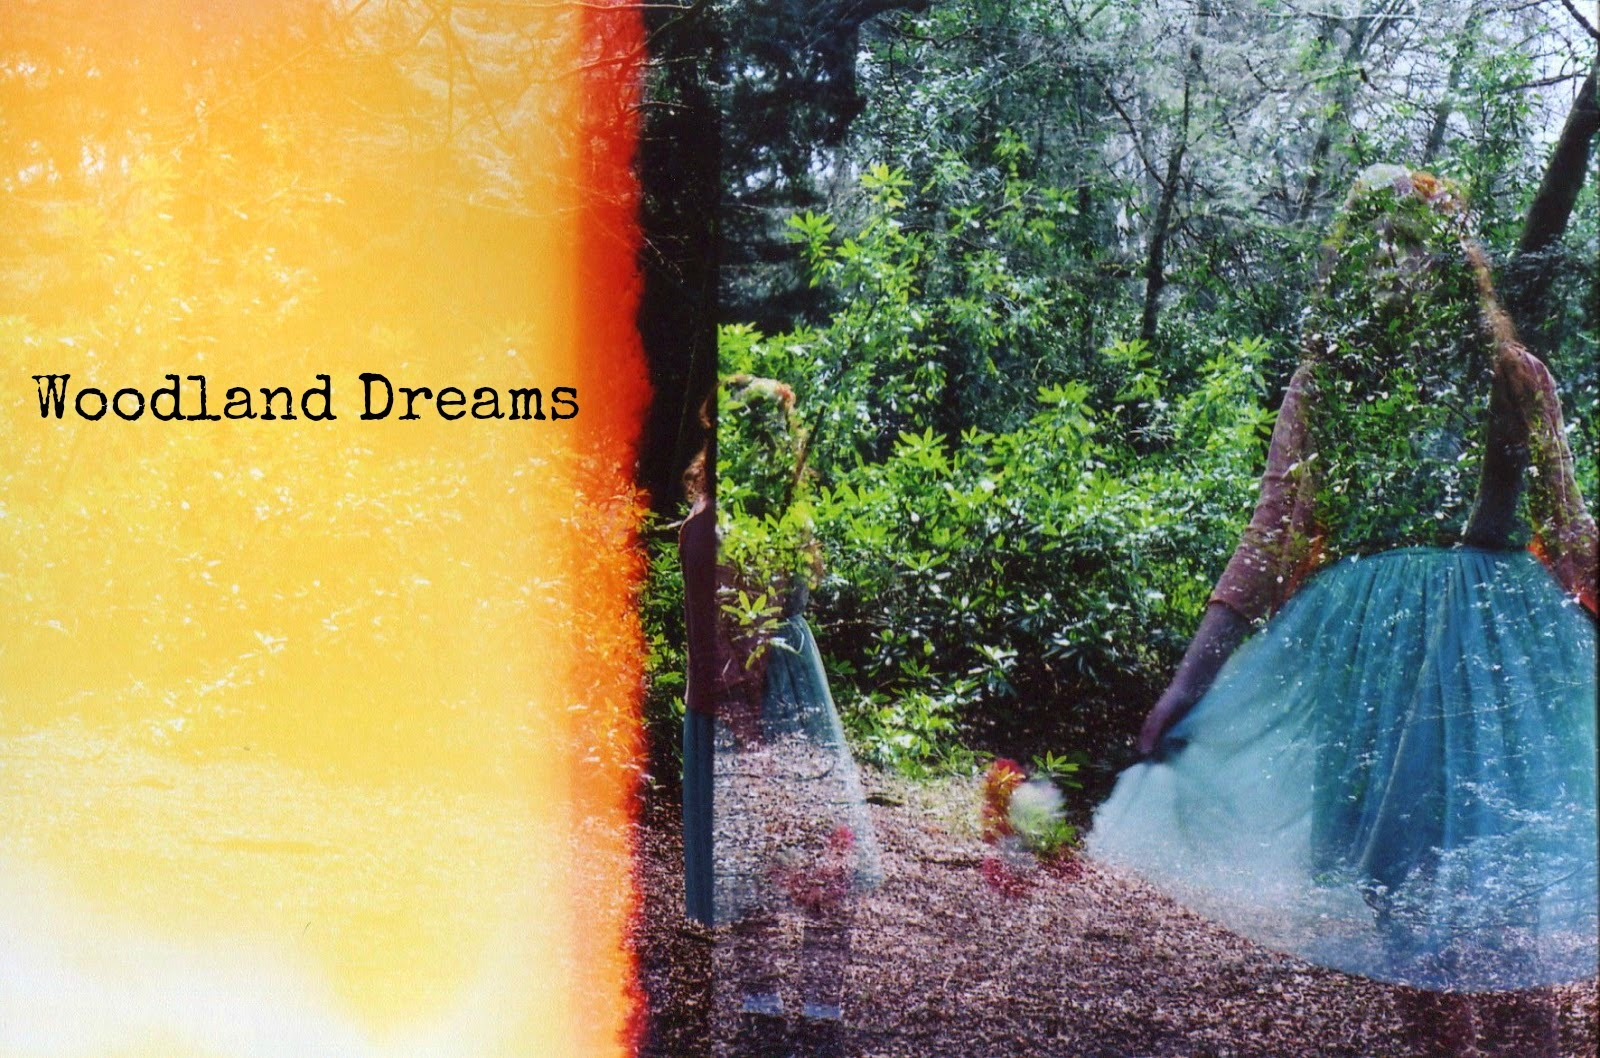 http://talesonfilm.blogspot.co.uk/2014/04/woodland-dreams.html